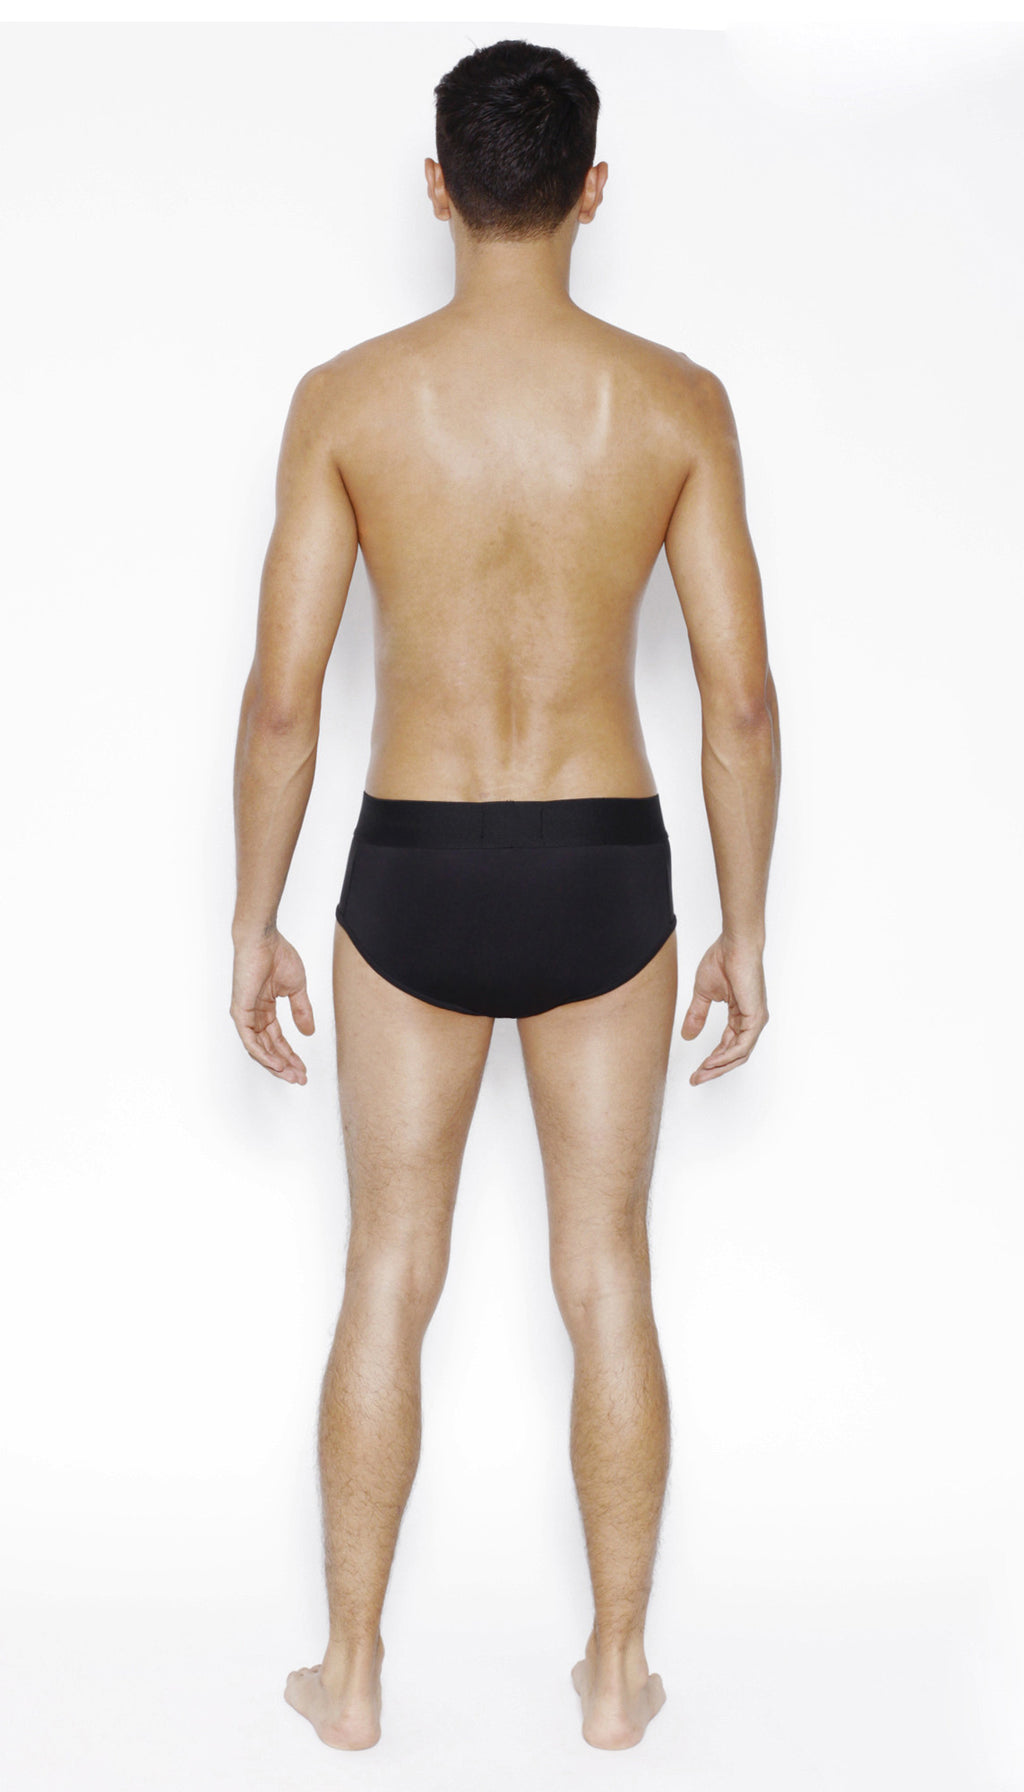 Low Rise Brief in BLACK - MENAGERIE Intimates MENS Lingerie